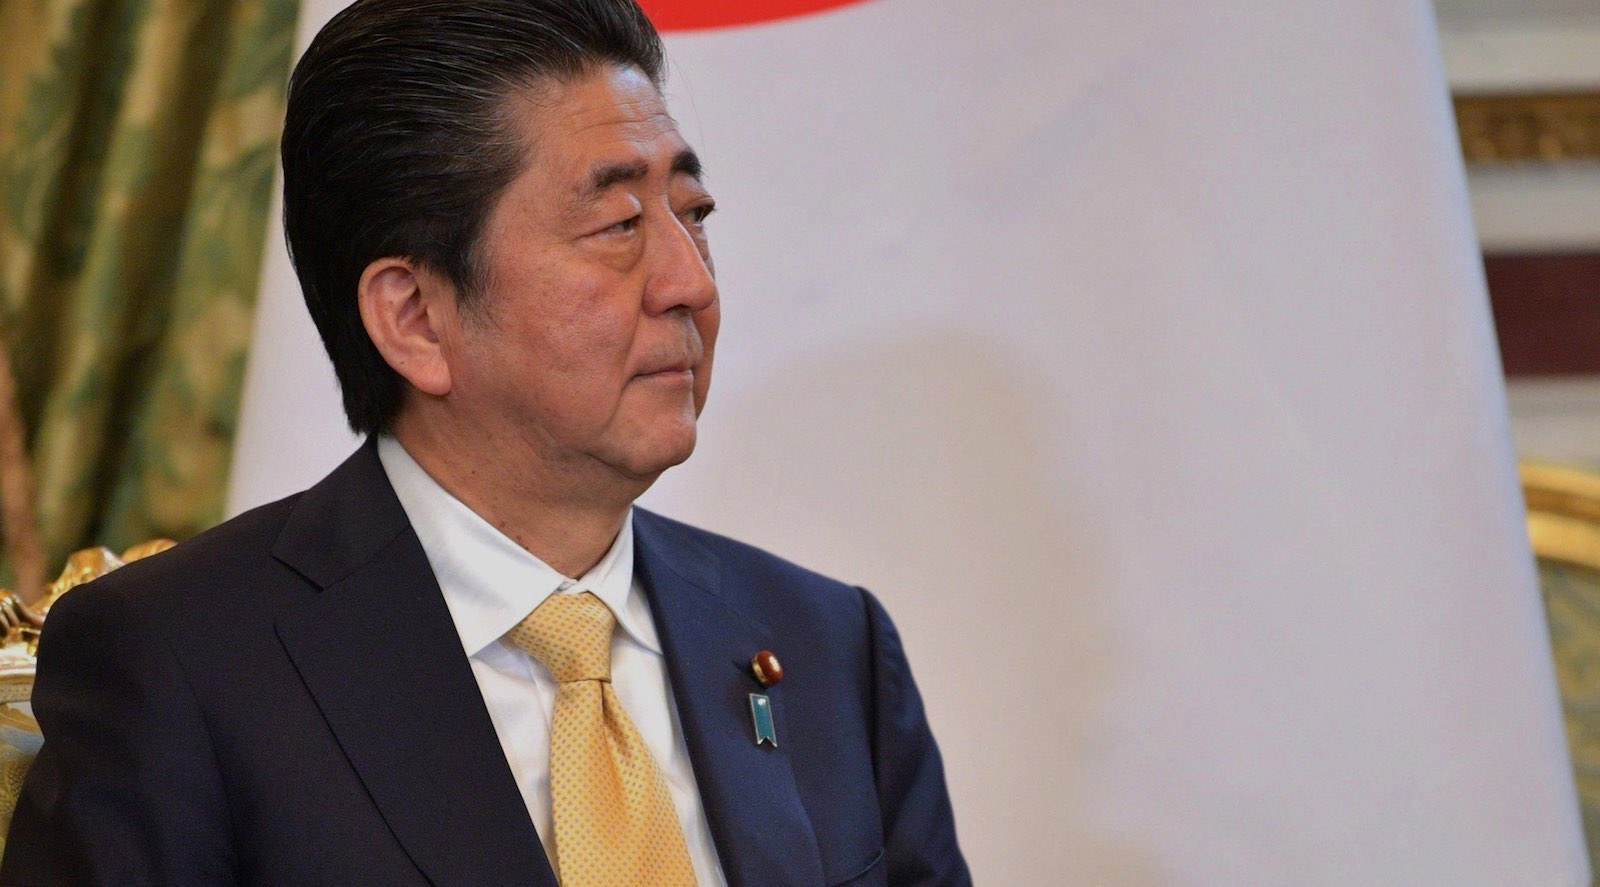 Japan's Prime Minister Shinzo Abe (Photo: Kremlin.ru)